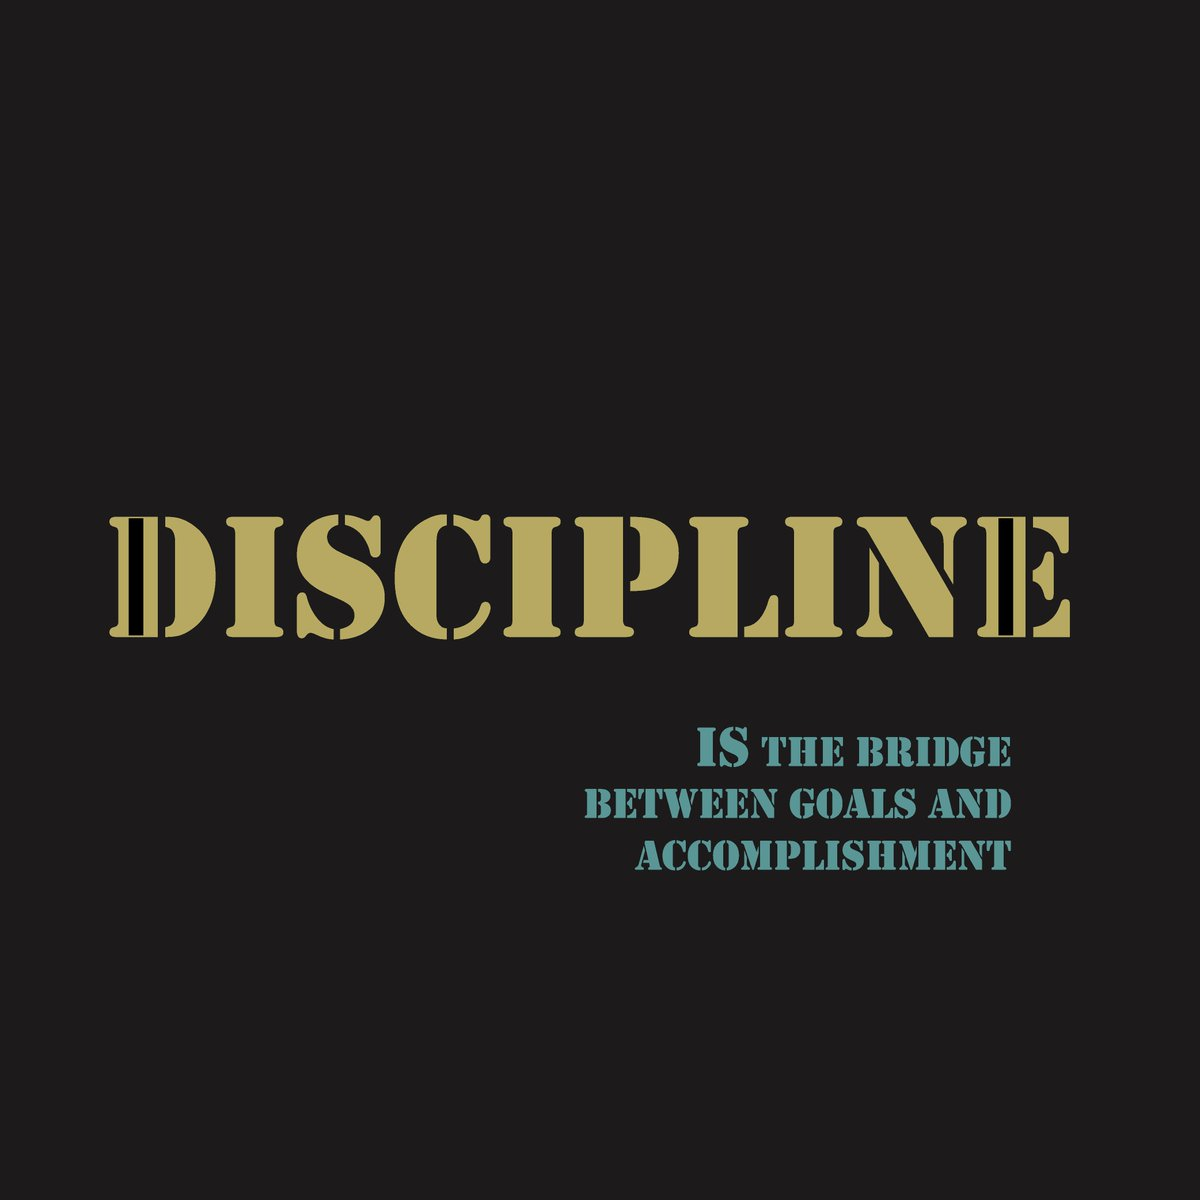 """Discipline is doing what you don't want to do so you can do what you want to do."" - John Maxwell https://t.co/QpoEC2je6M"